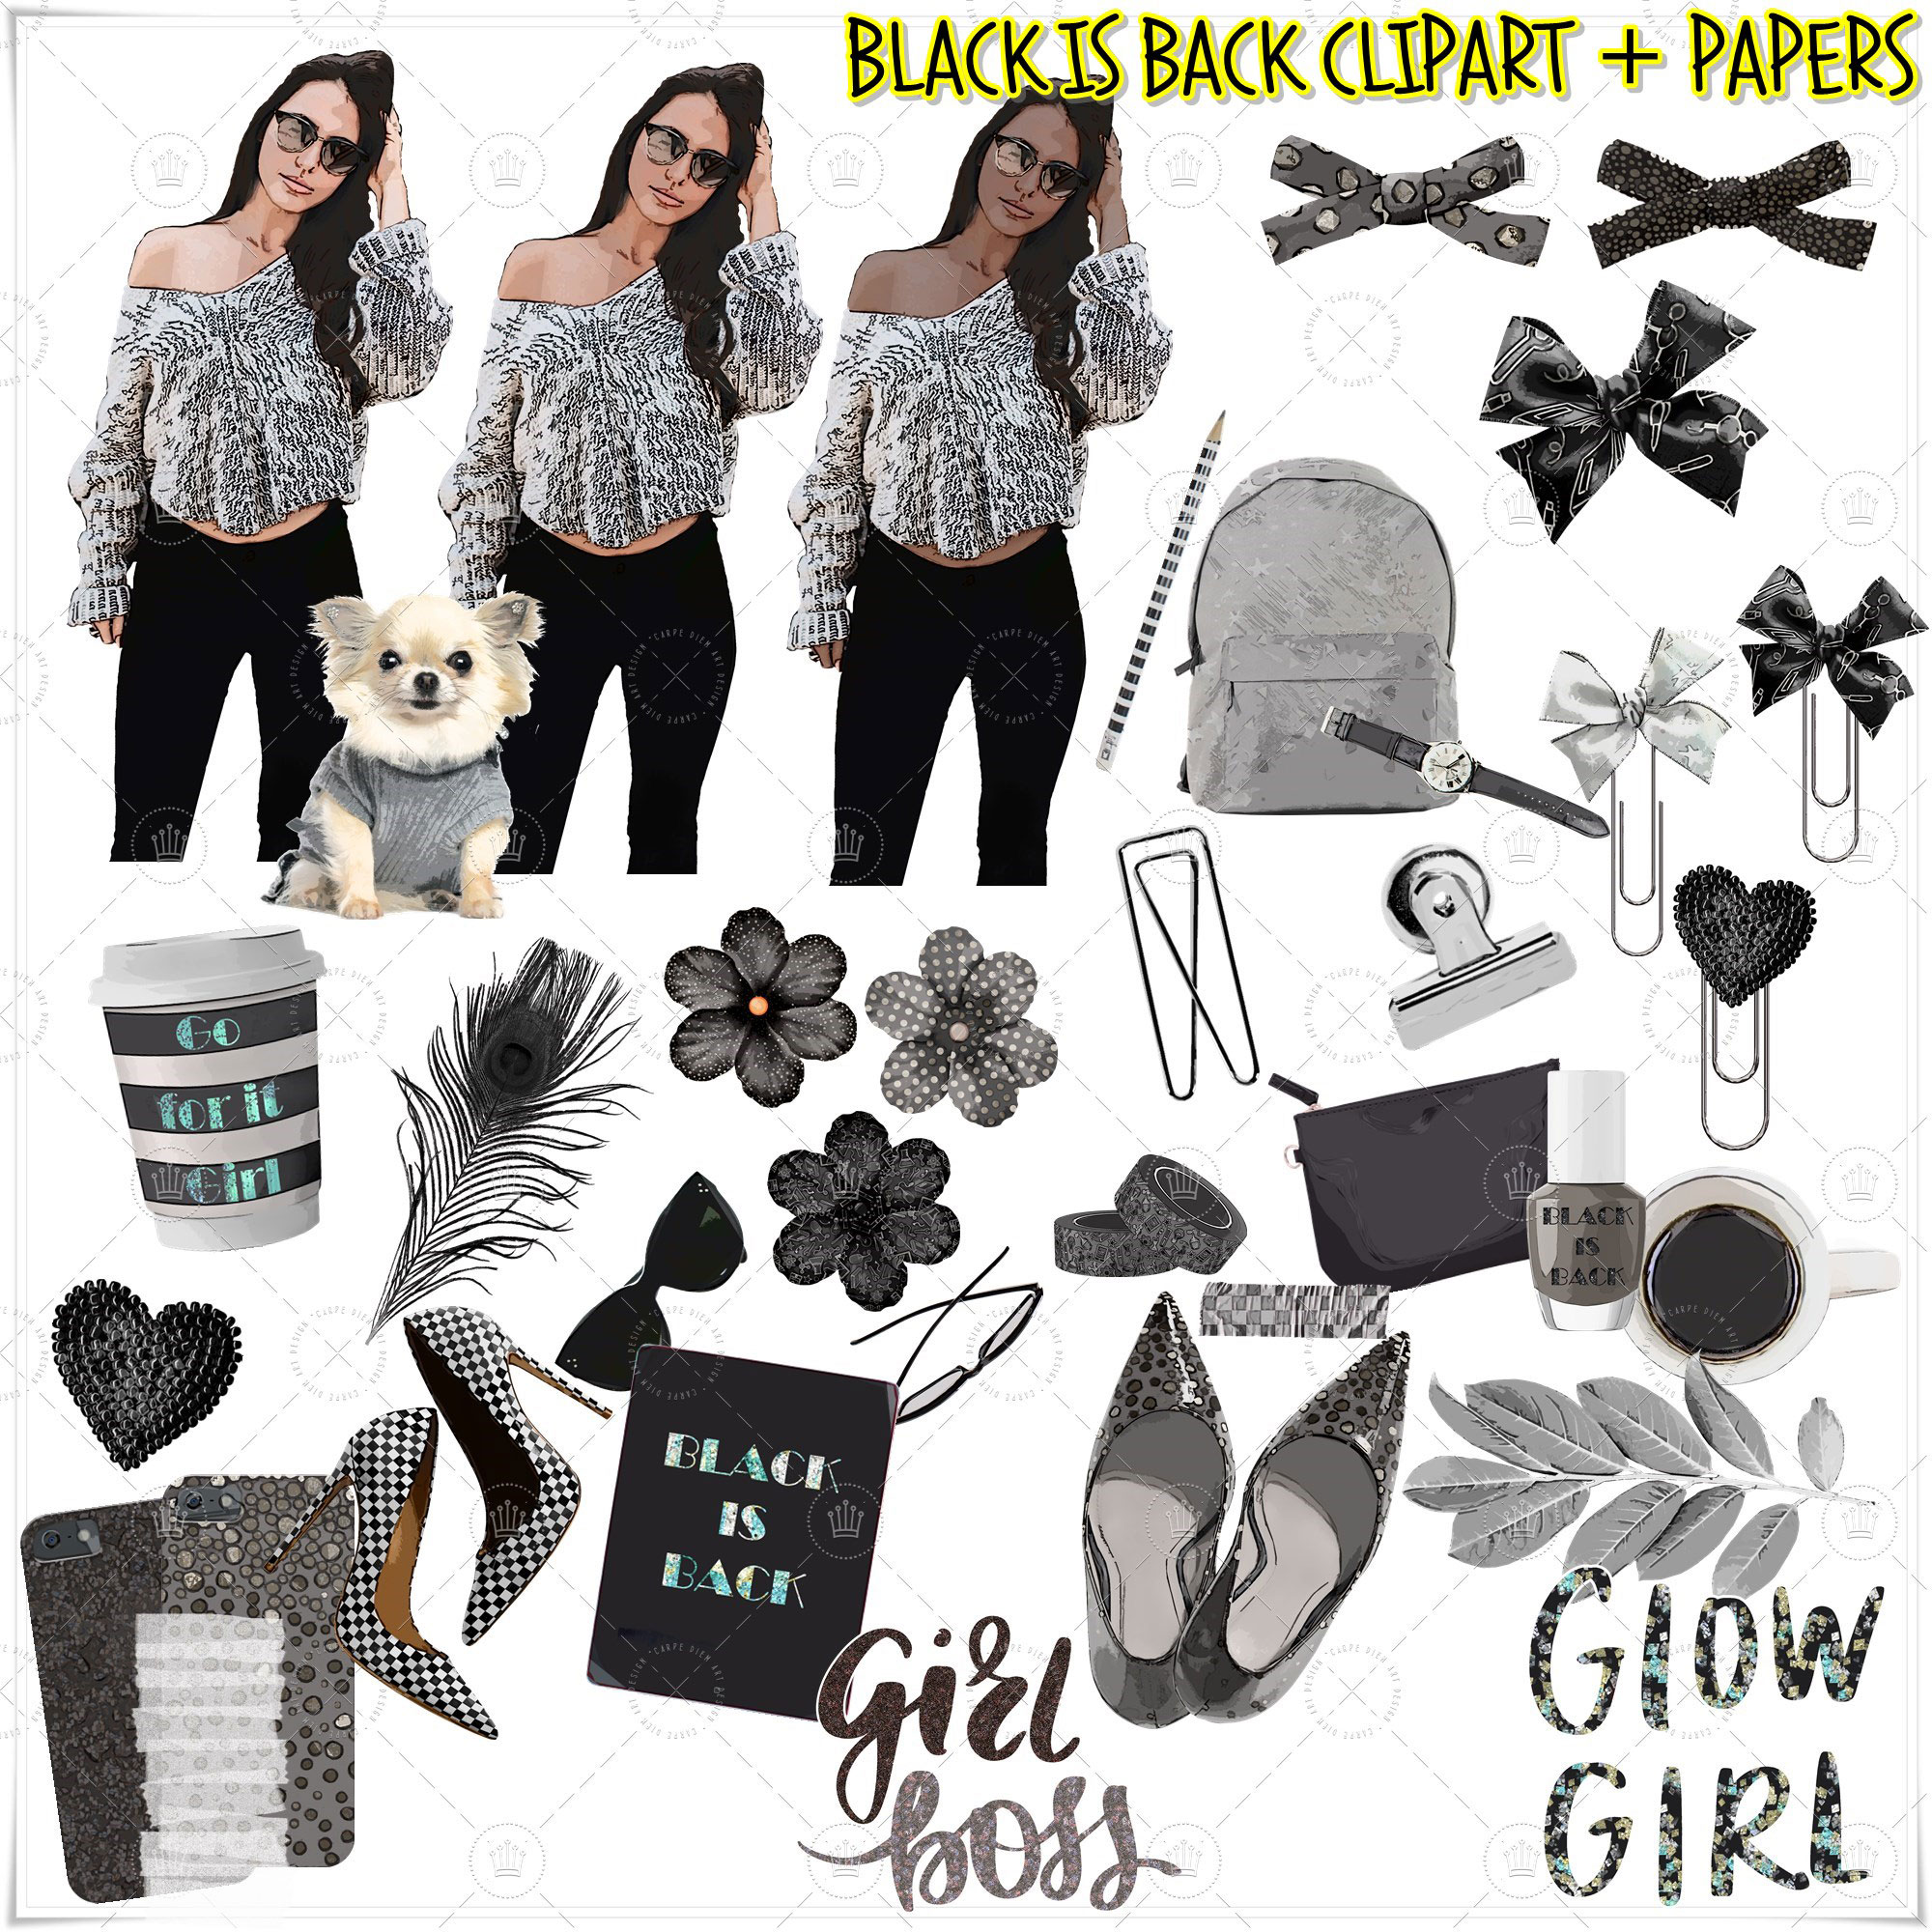 Black is back clipart set only in Etsy